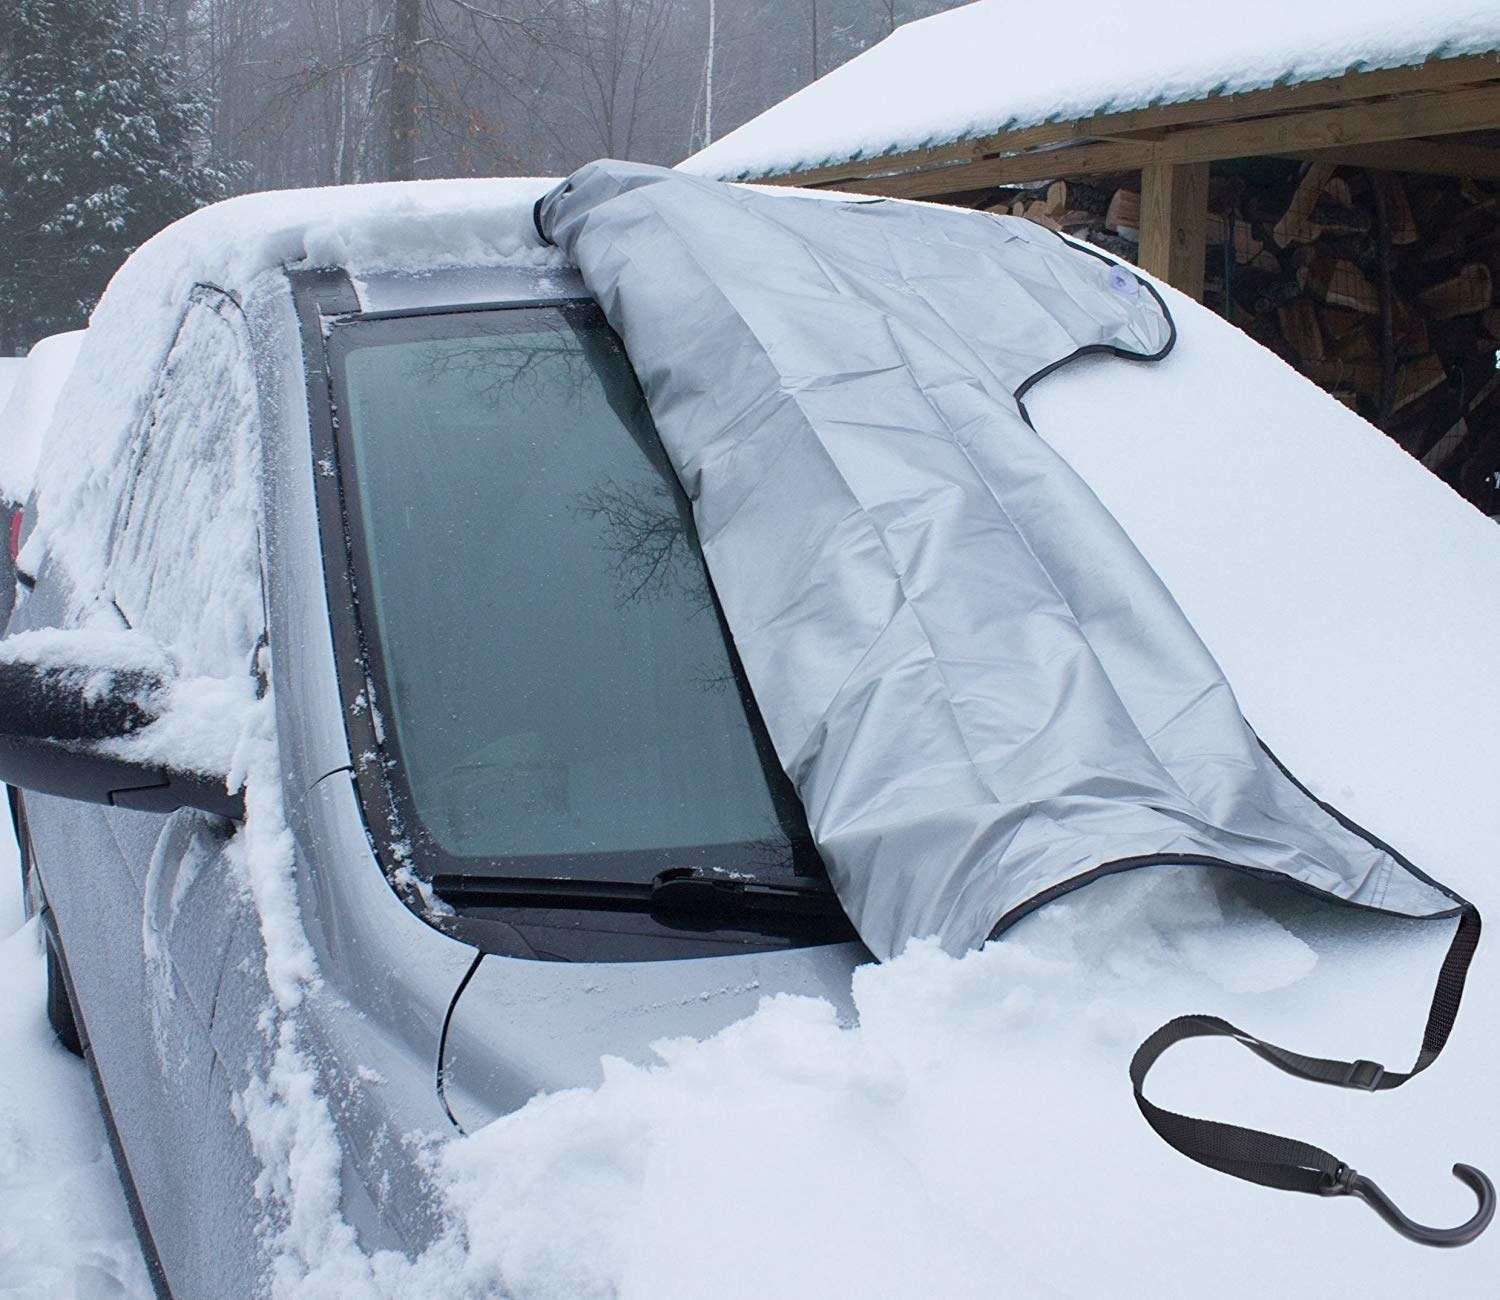 The cover, partially removed from a windshield of a car covered in snow, showing how the windshield is totally snow-free under the cover